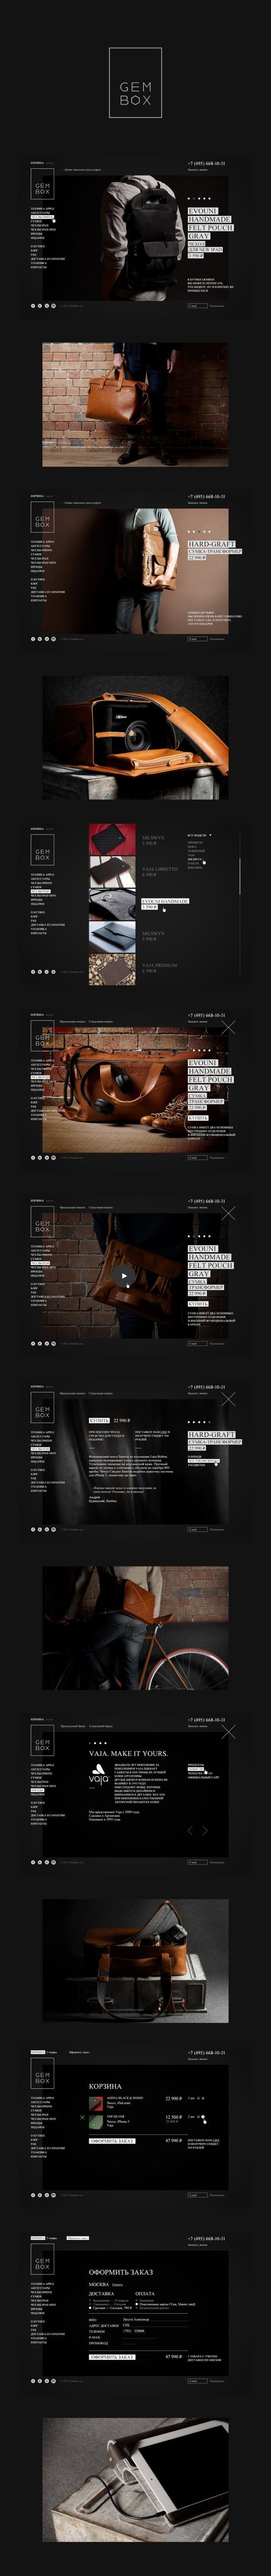 Inspiring Web Designs | From up North